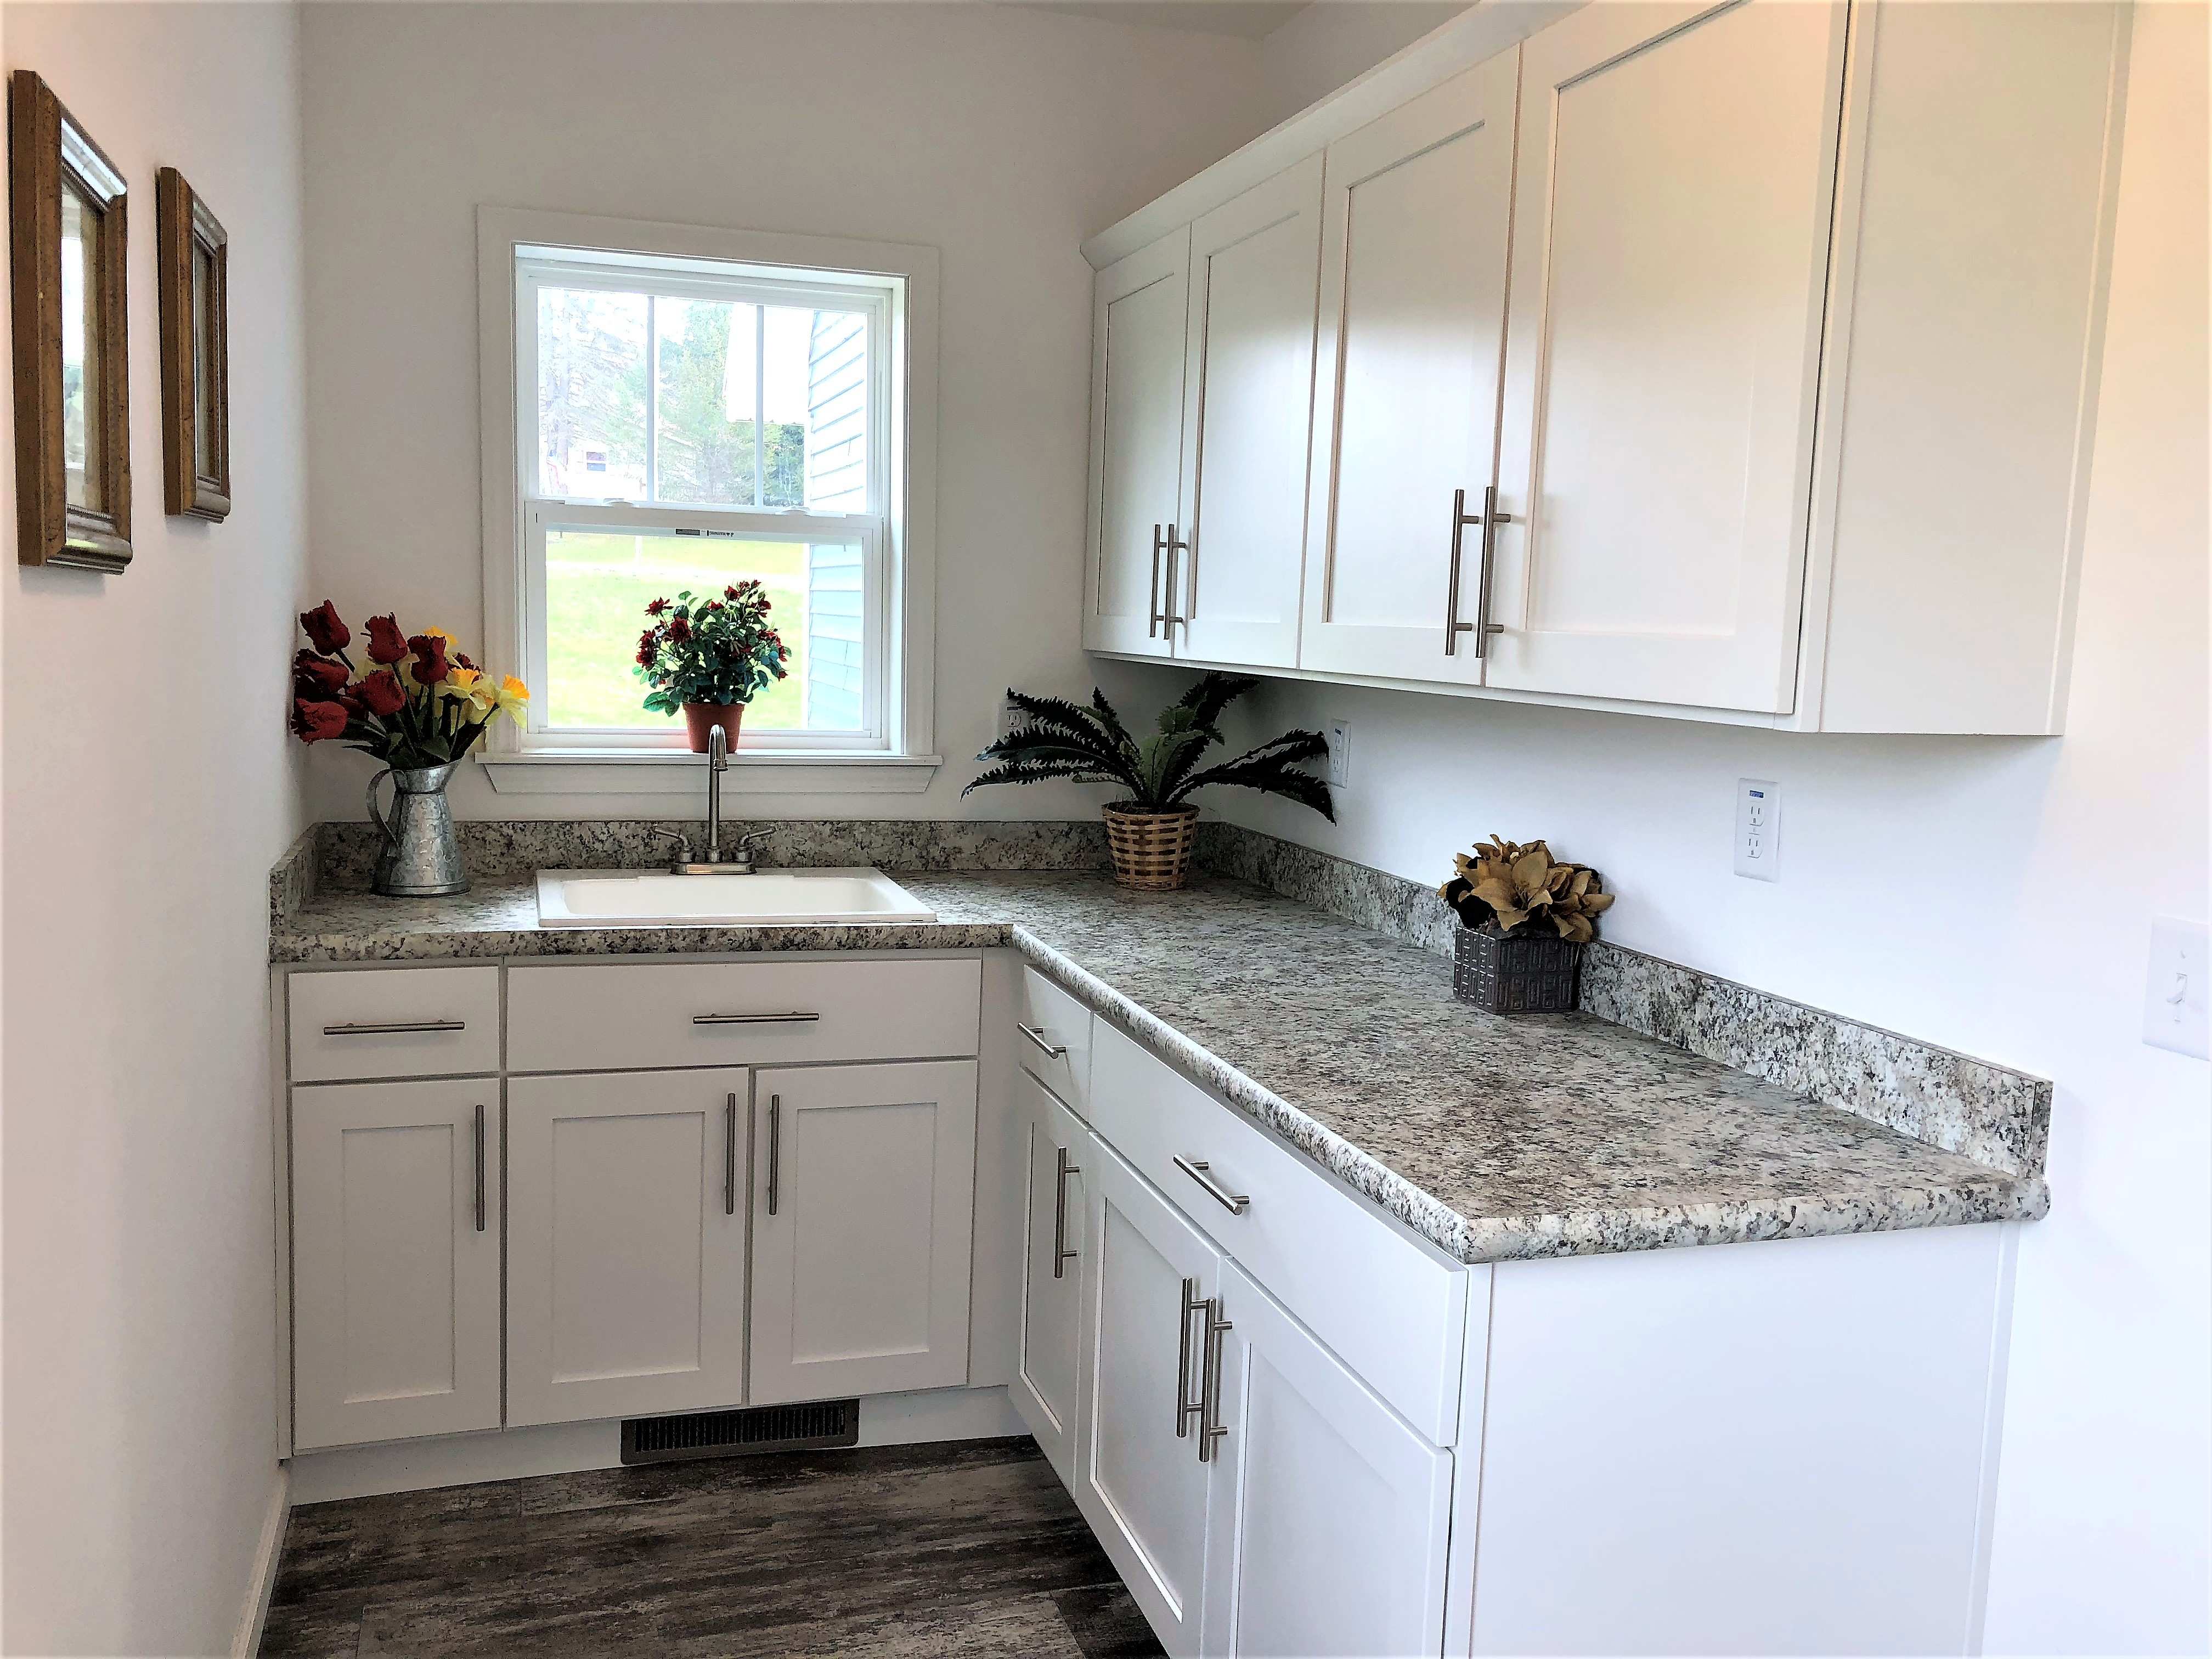 This Optional Utility is Shown With Optional White Cabinets